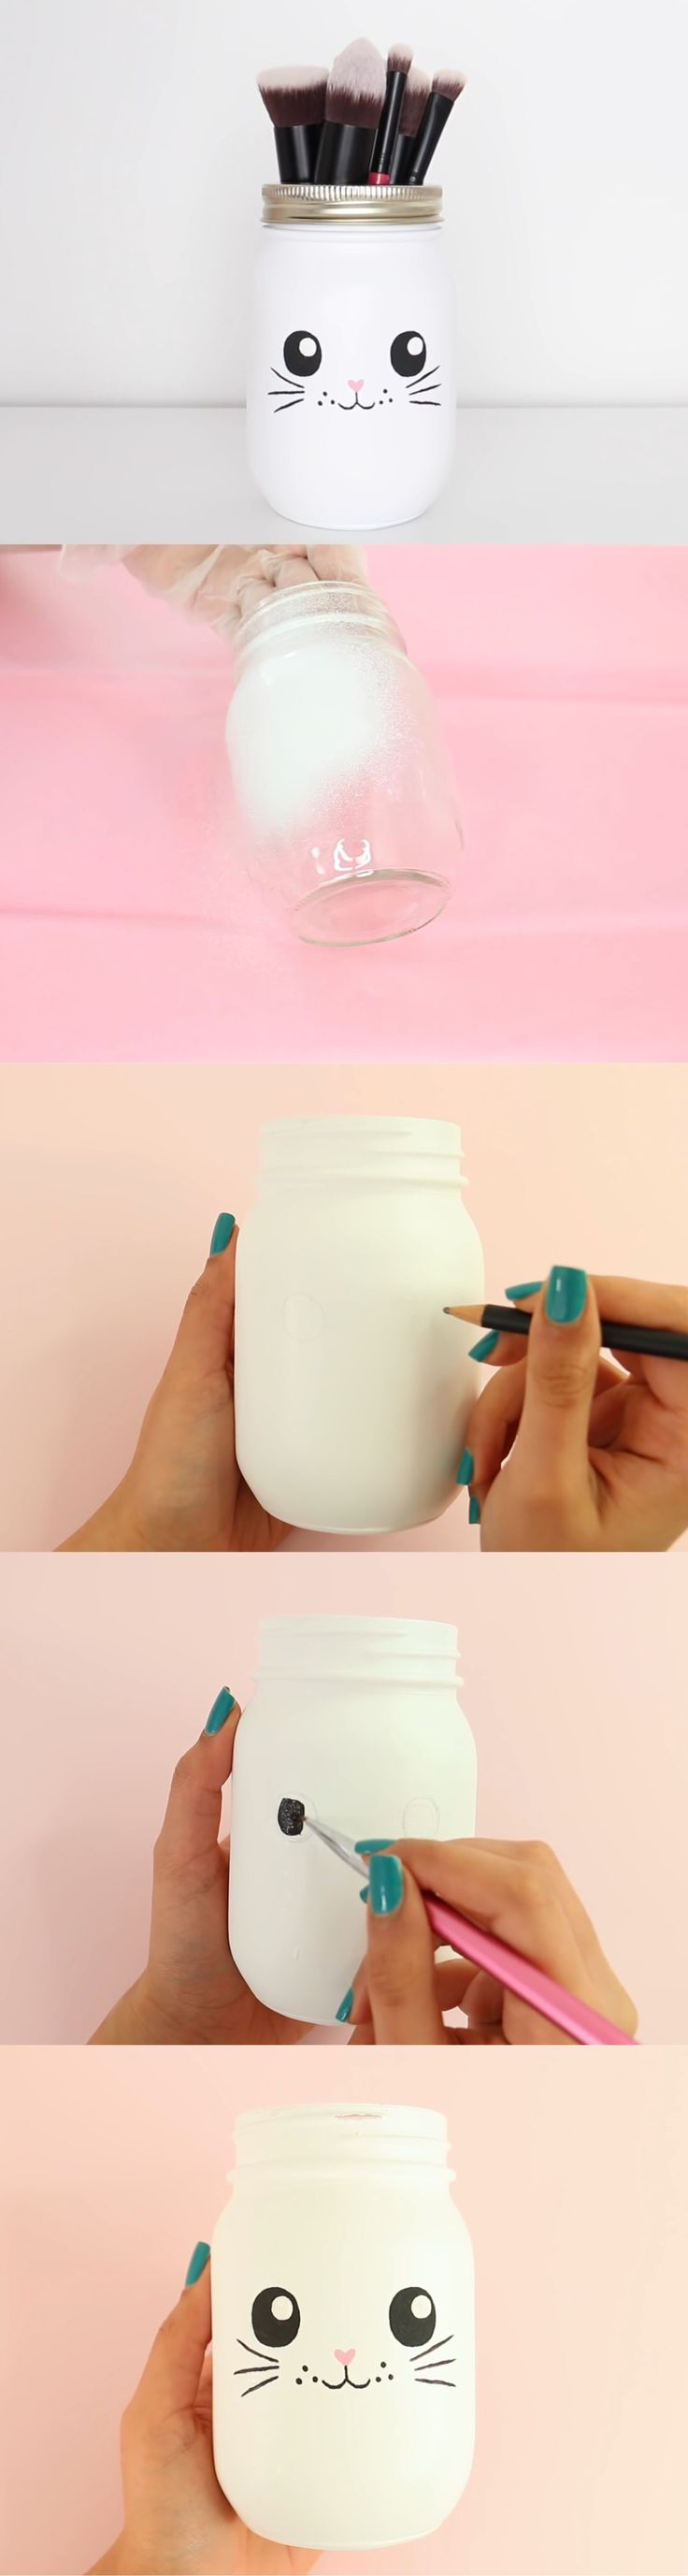 Nim C's mason jar container DIY tutorial. So cute!!!!